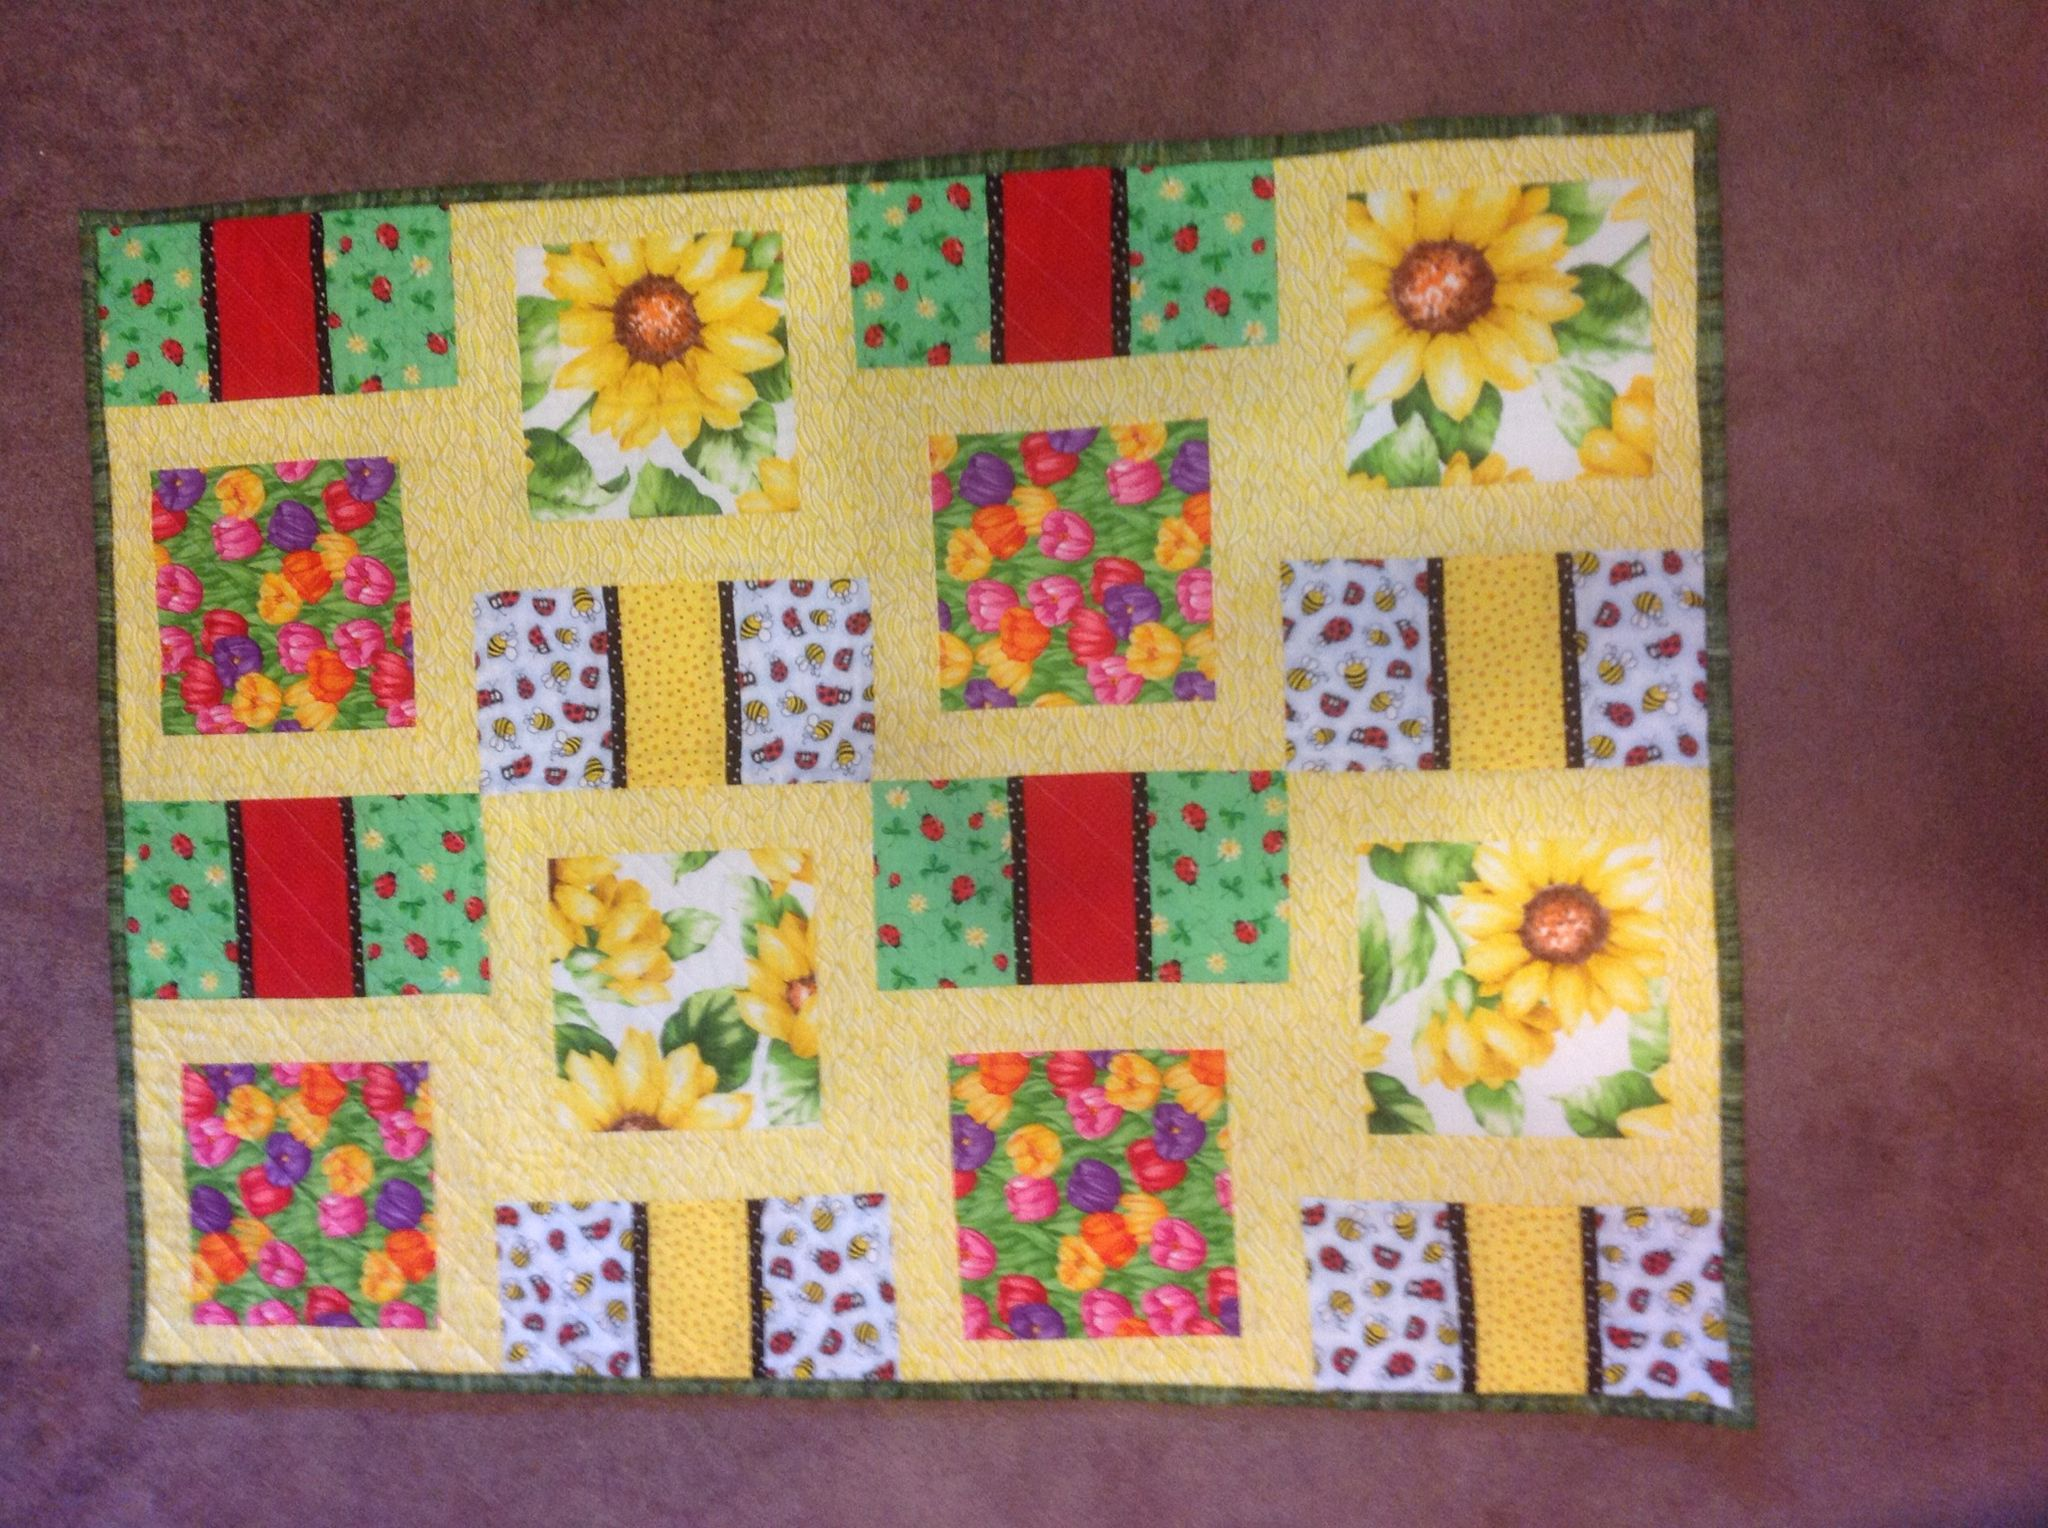 Sunflower, bees, and ladybug quilt